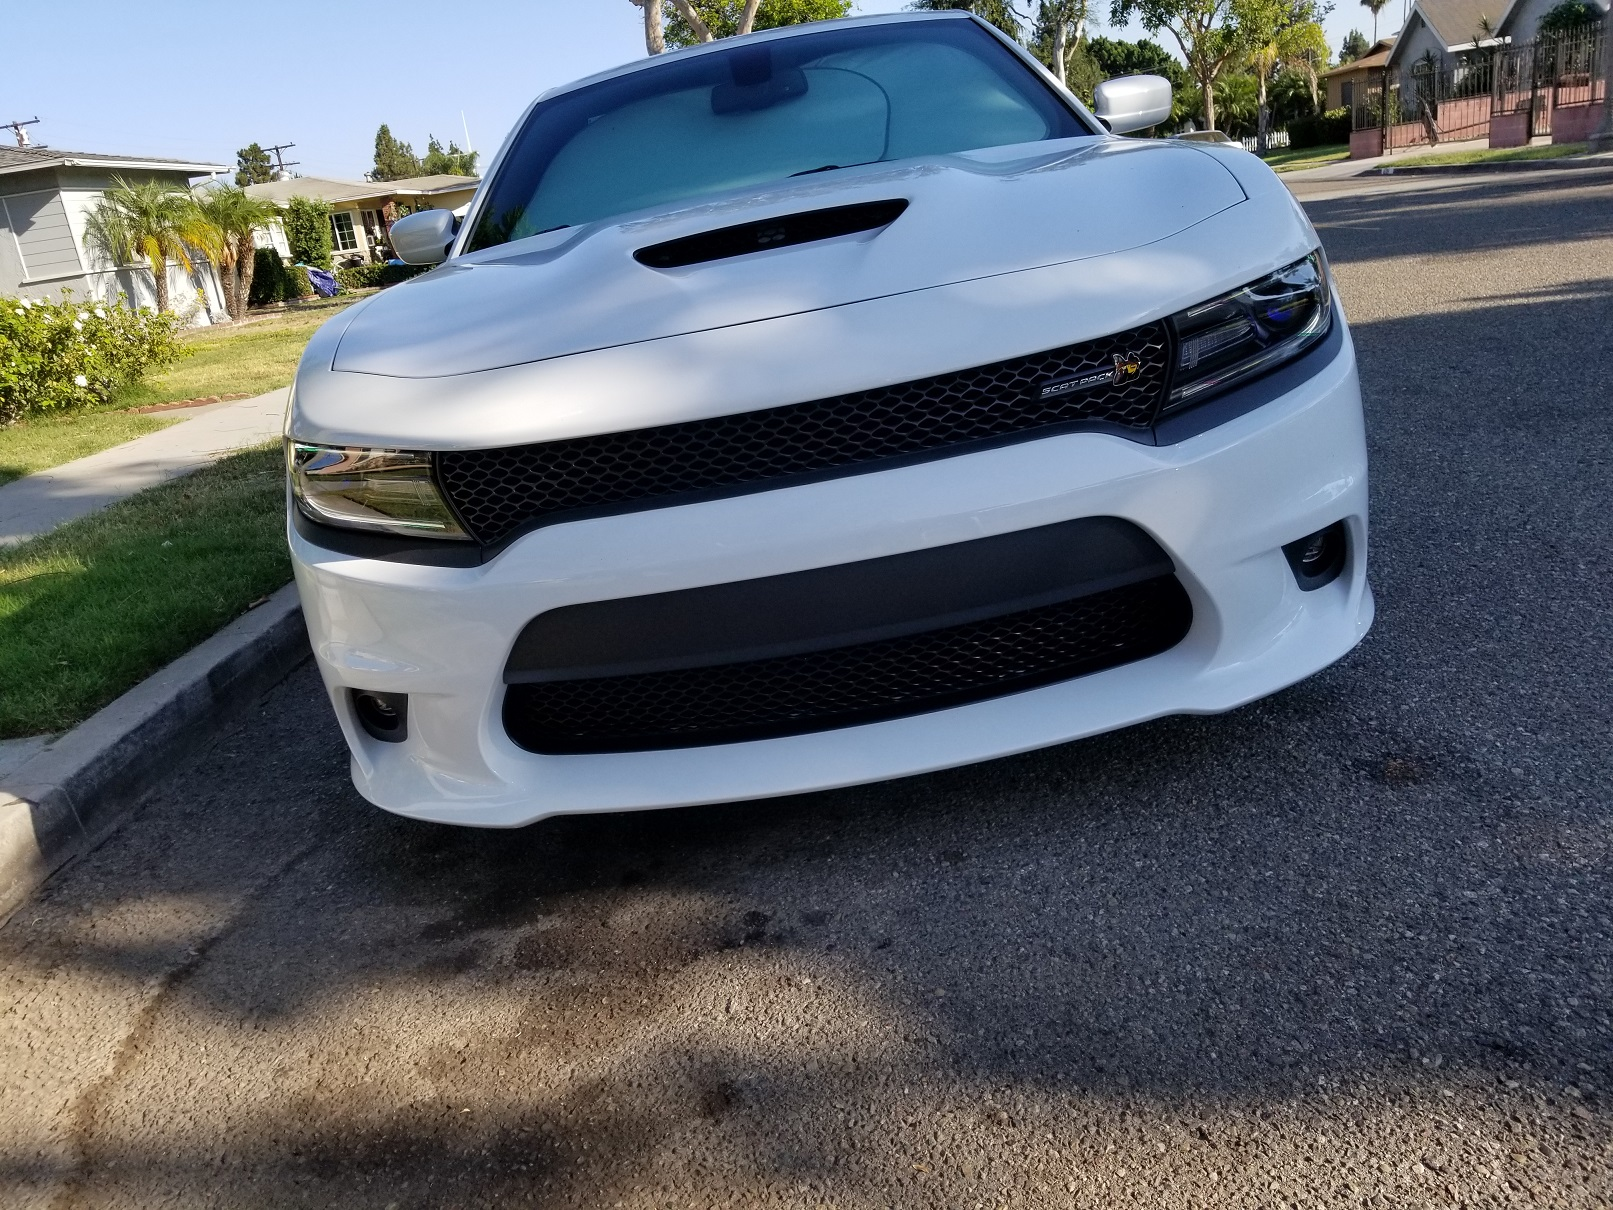 2017 Dodge Charger R T Pack 478 Mo 0 Down Lease Transfer